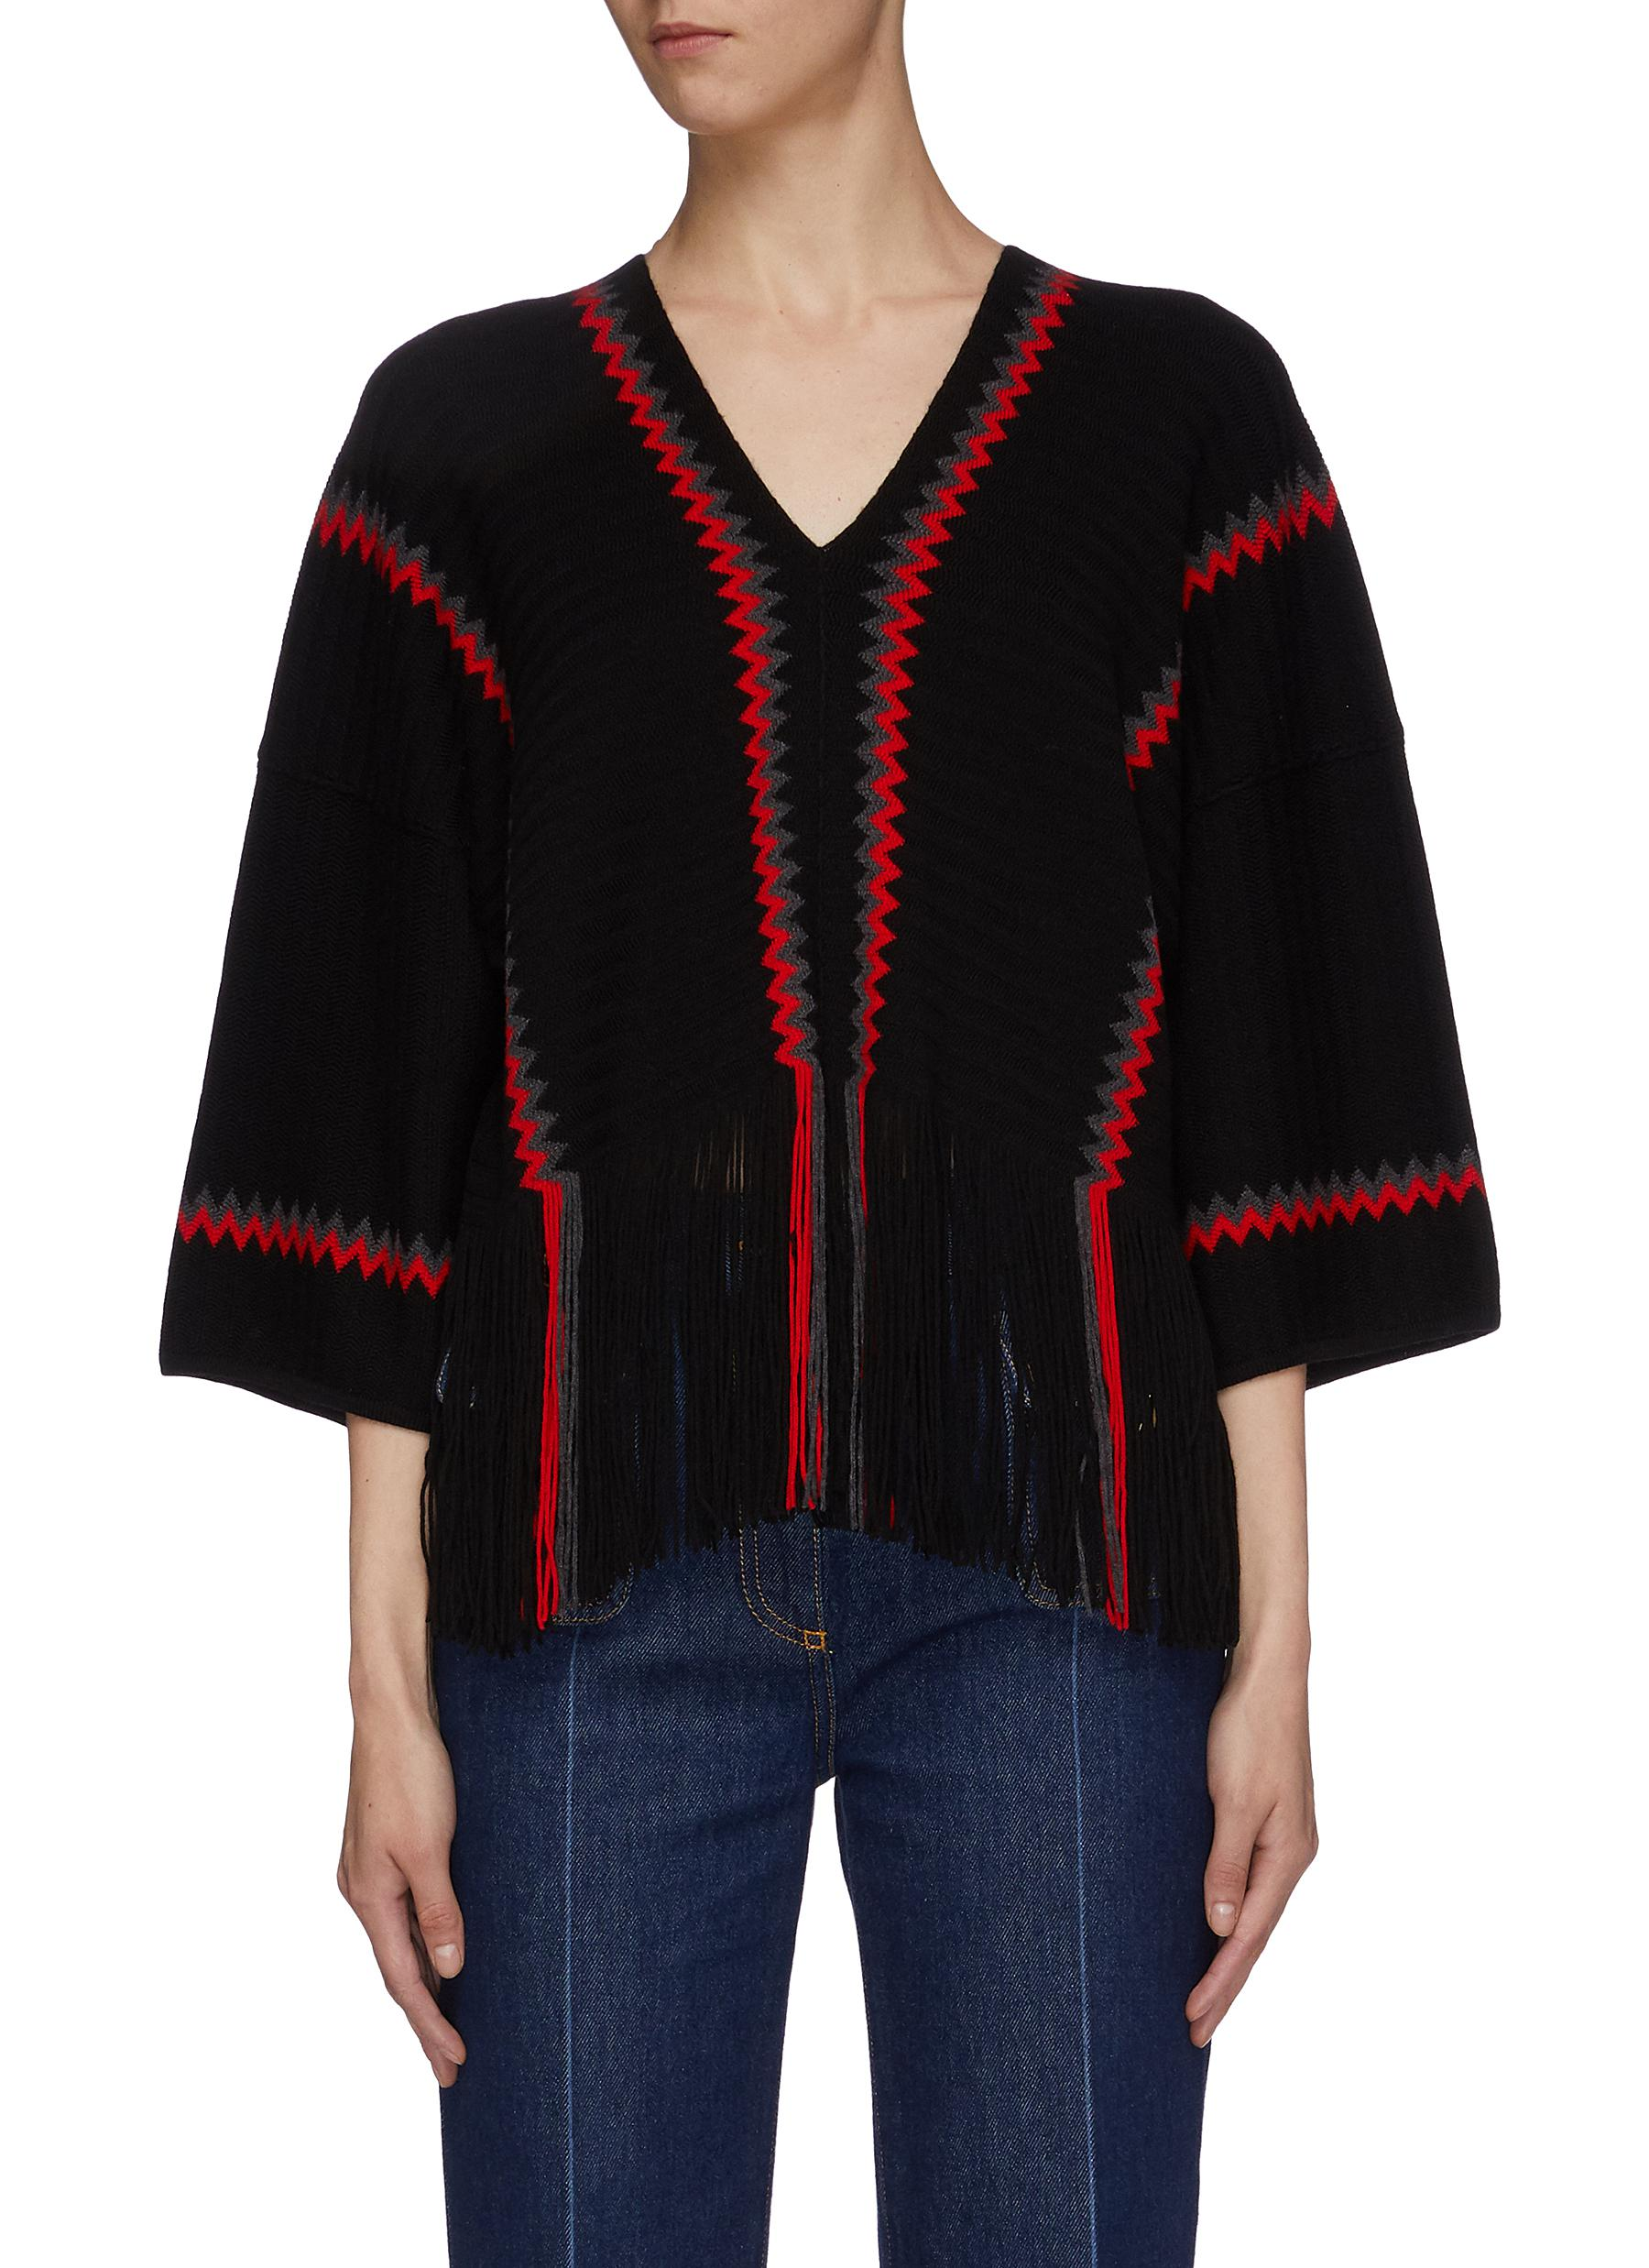 Zig zag stripe fringe hem wool knit top by Sonia Rykiel